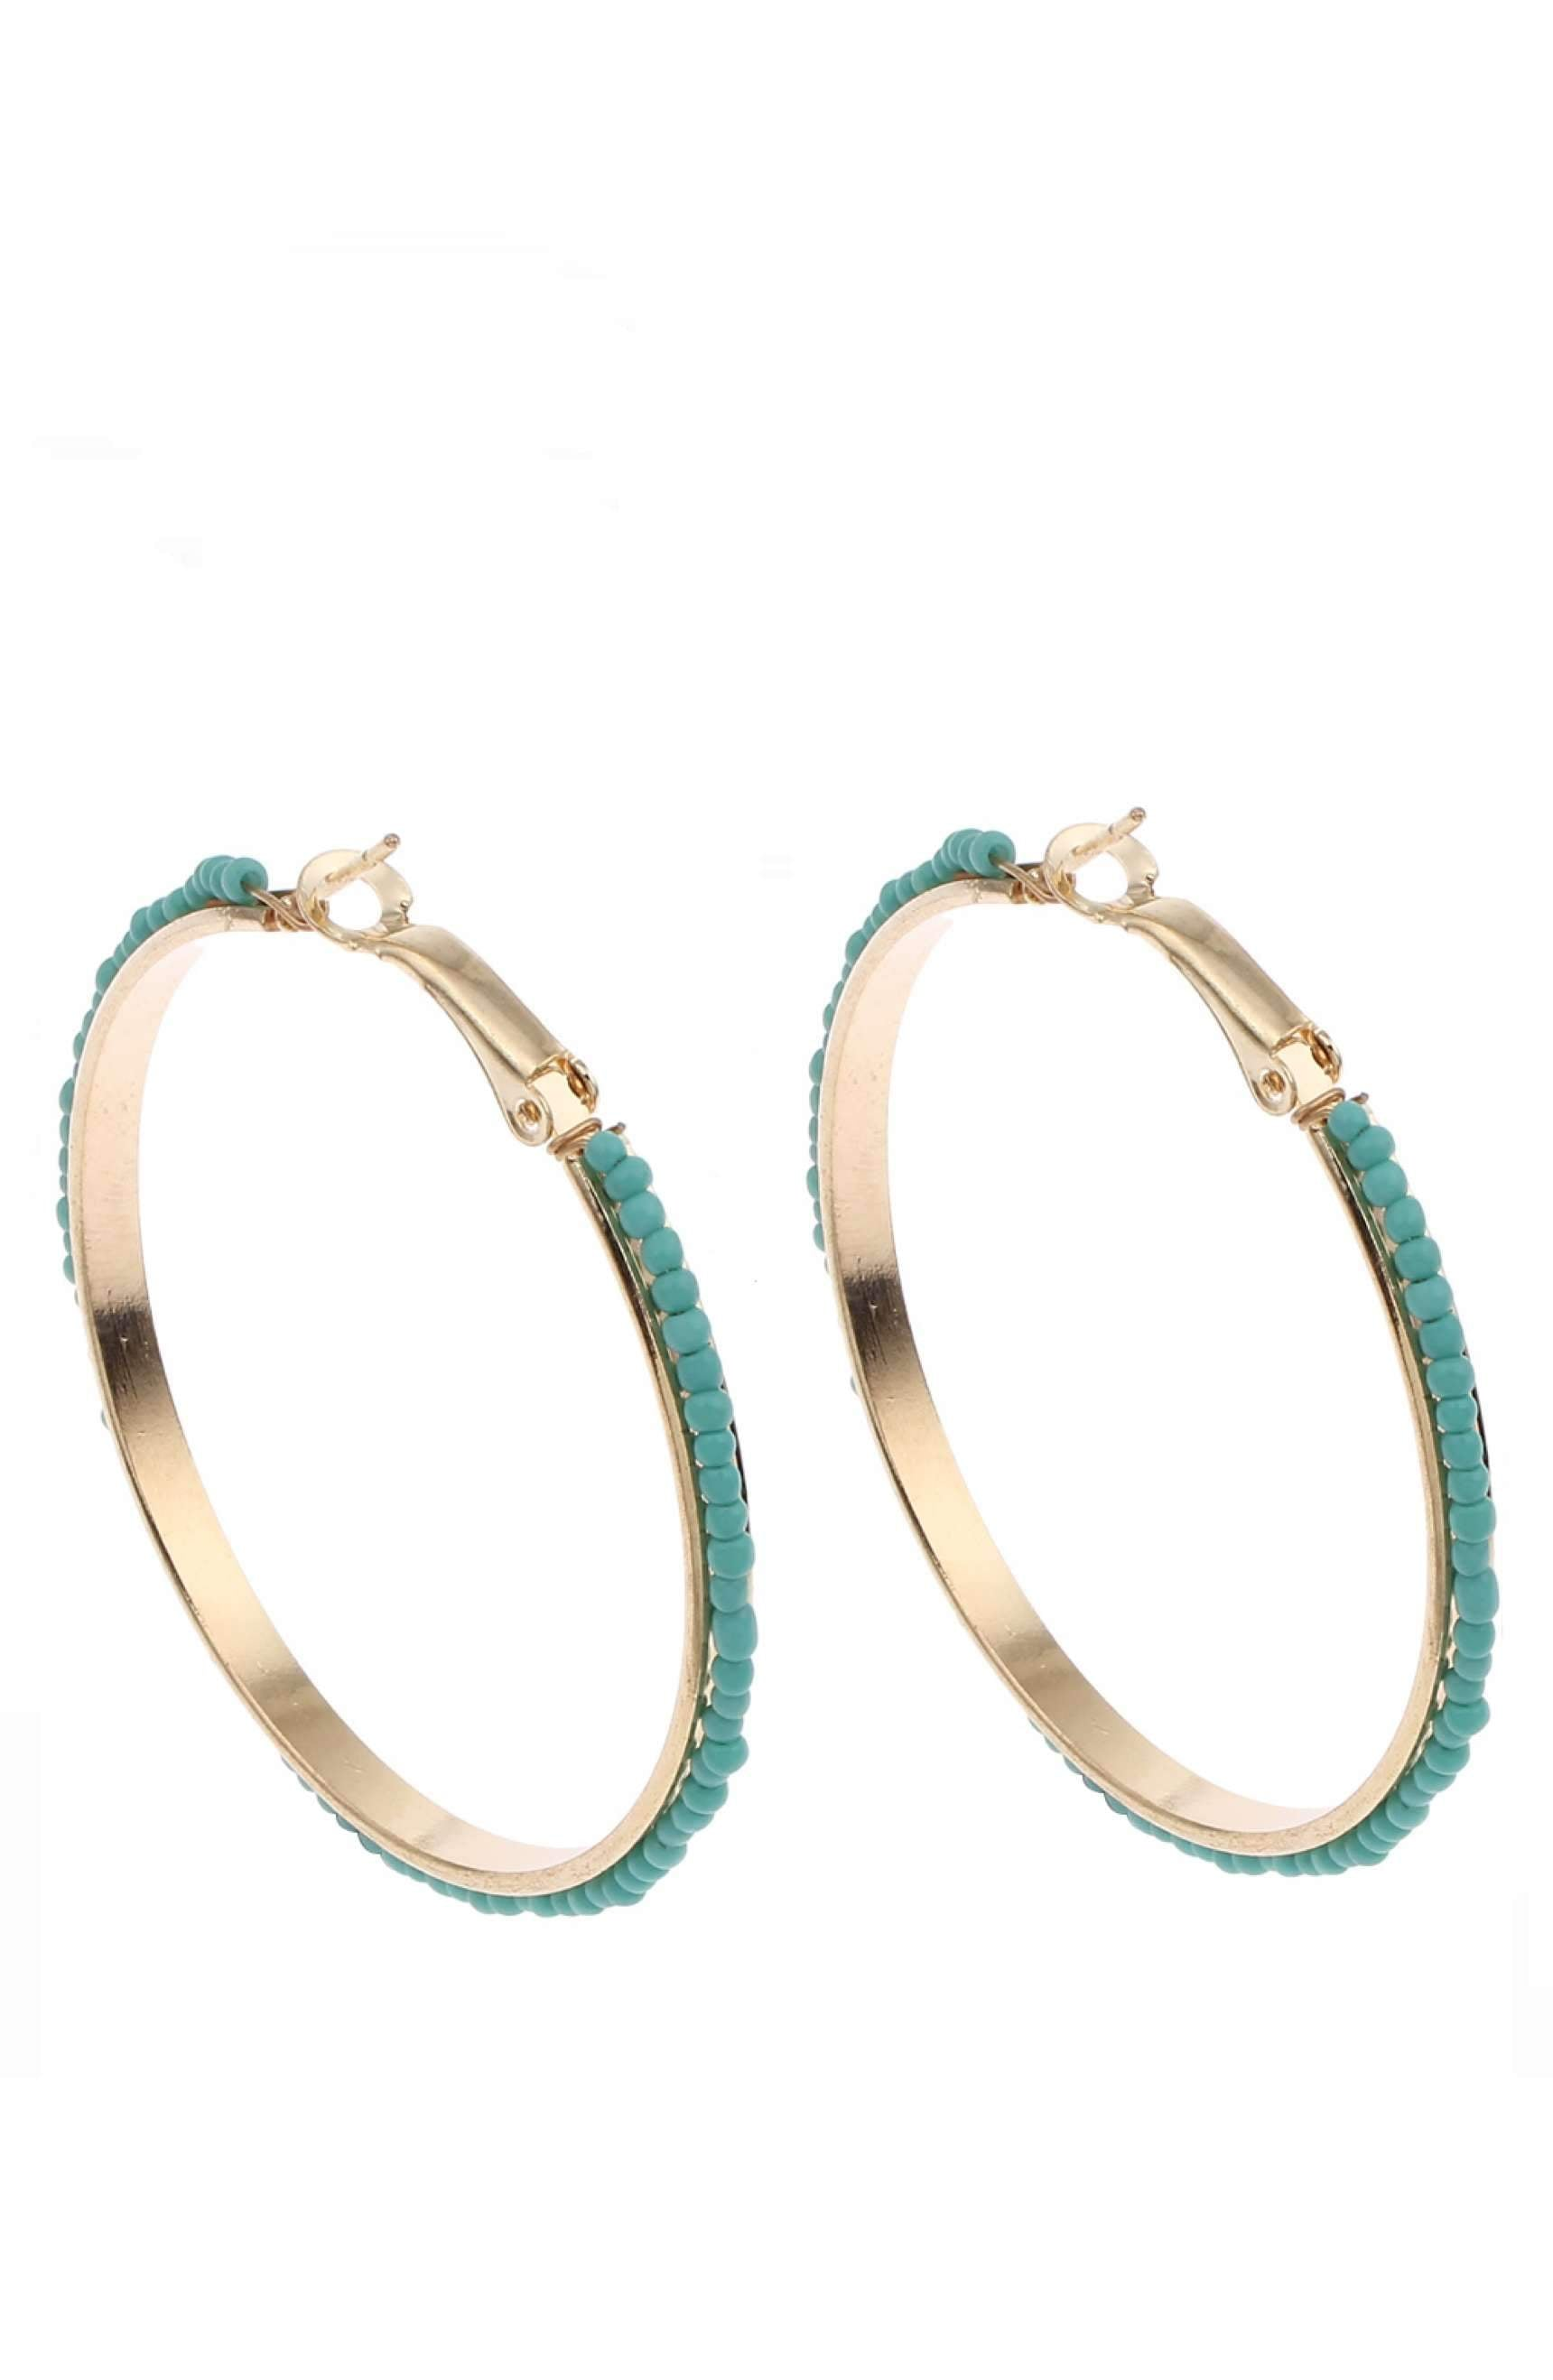 18K Turquoise Hoop Earrings